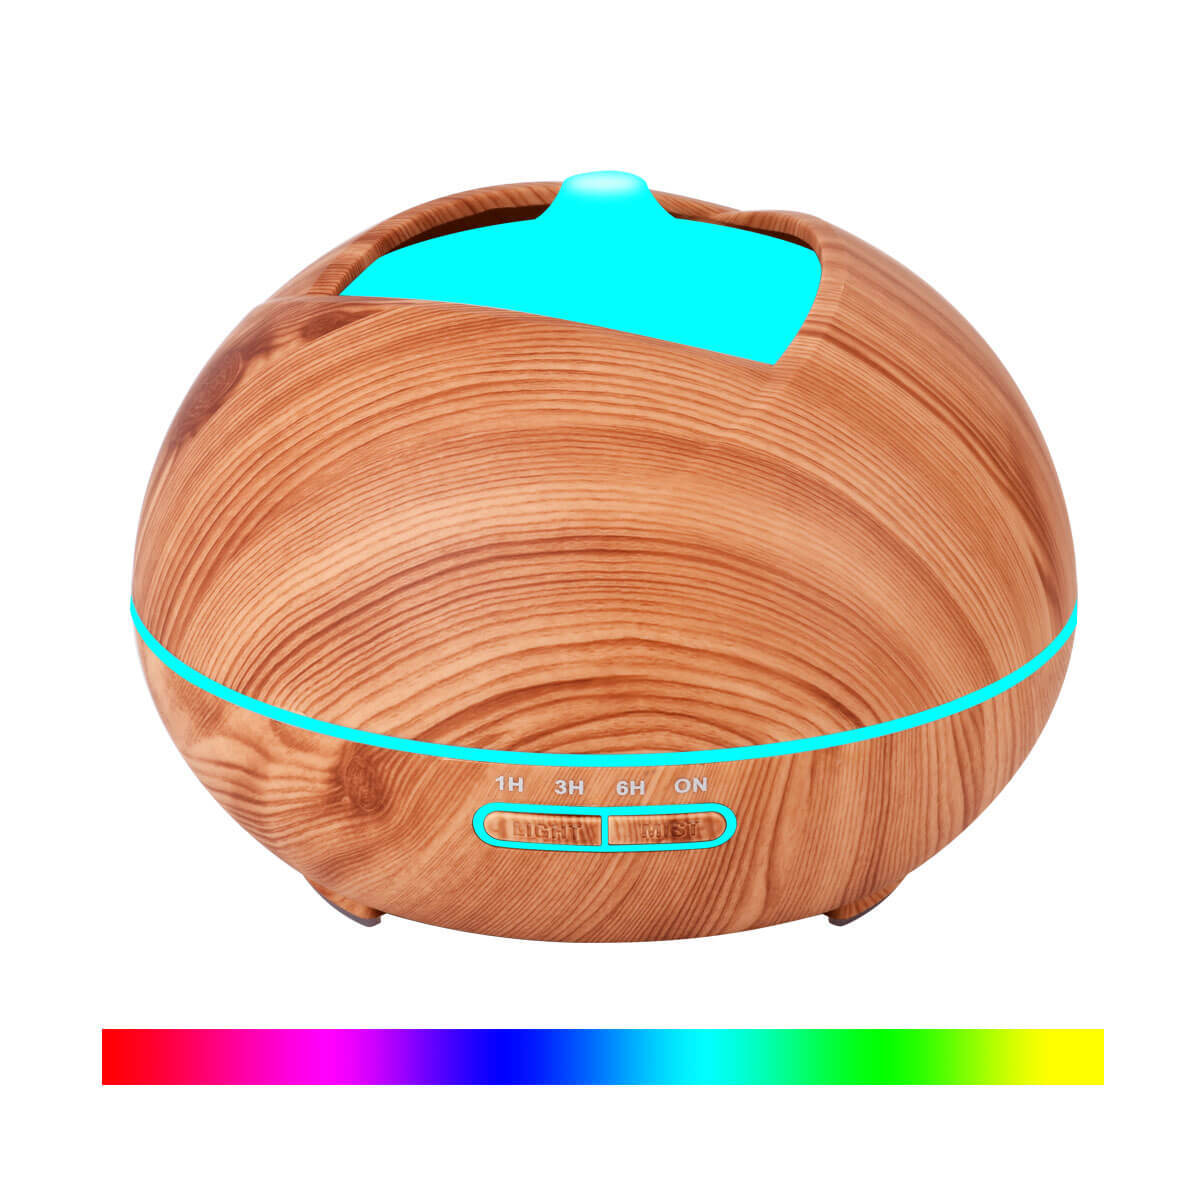 HOT 300ML Wood Grain Essential Oil Aroma Diffuser with Color Changing LED Lights Ultrasonic Cool Mist Air Humidifier 300ml humidifiers essential oil diffuser for aromatherapy premium cool mist aroma humidifier with changing colored led lights